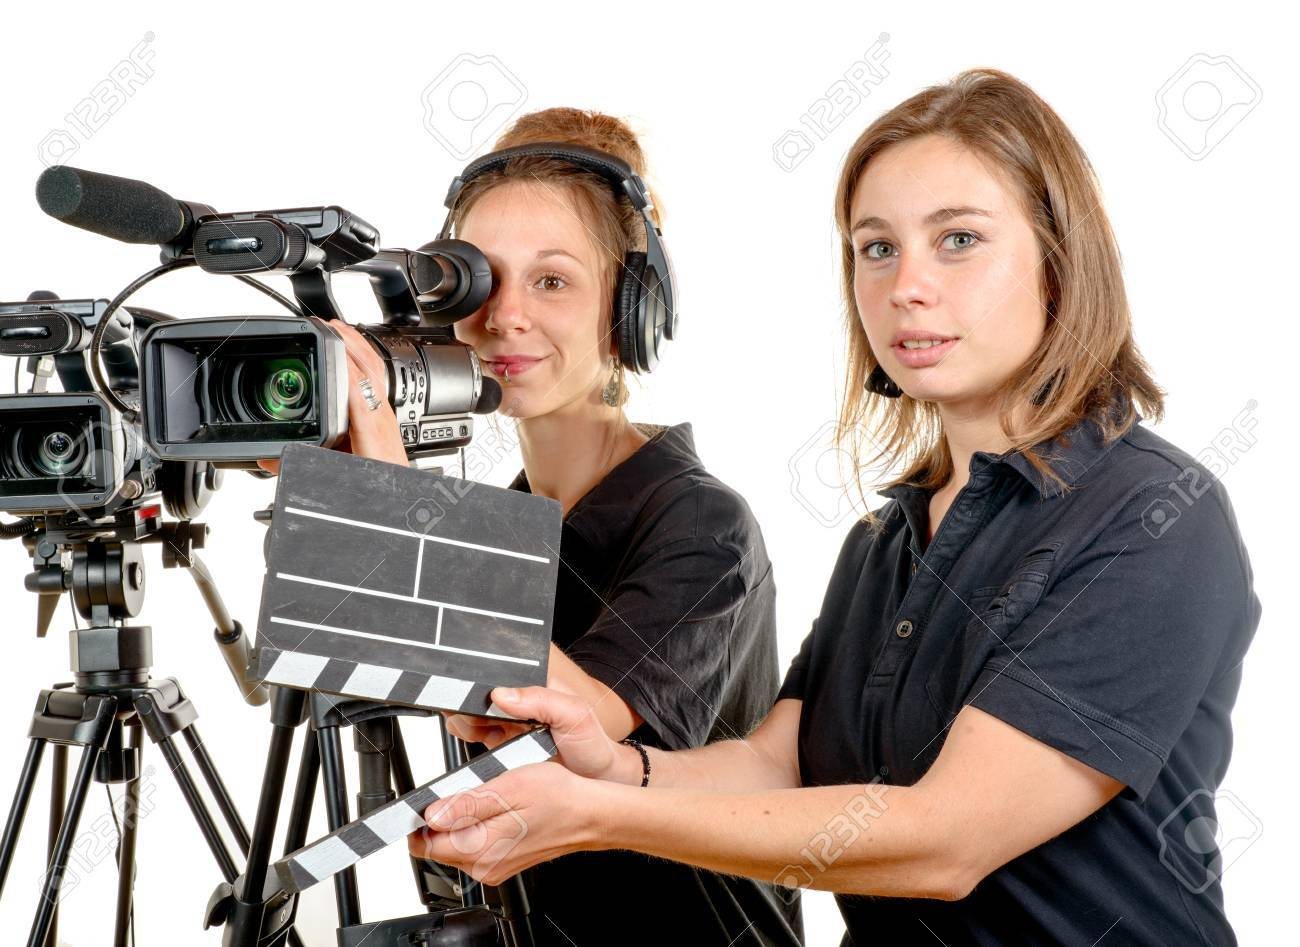 Stock Photo - two pretty young women work with a video camera on the white  background 984f9ce562